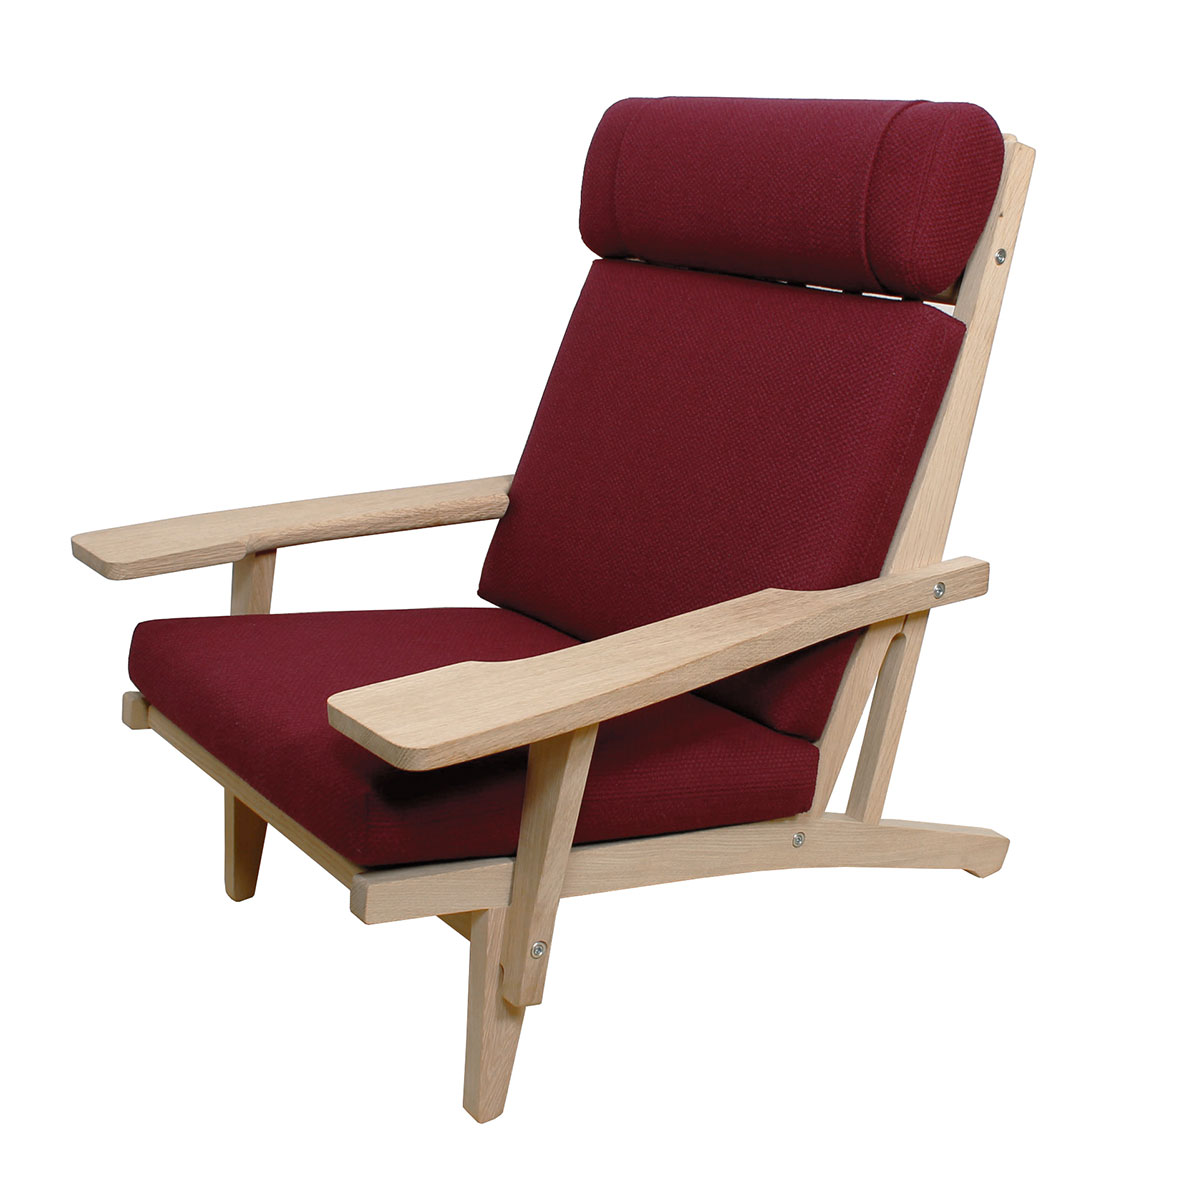 NEW Hans Wegner GE 375 High Back Easy Chair for GETAMA